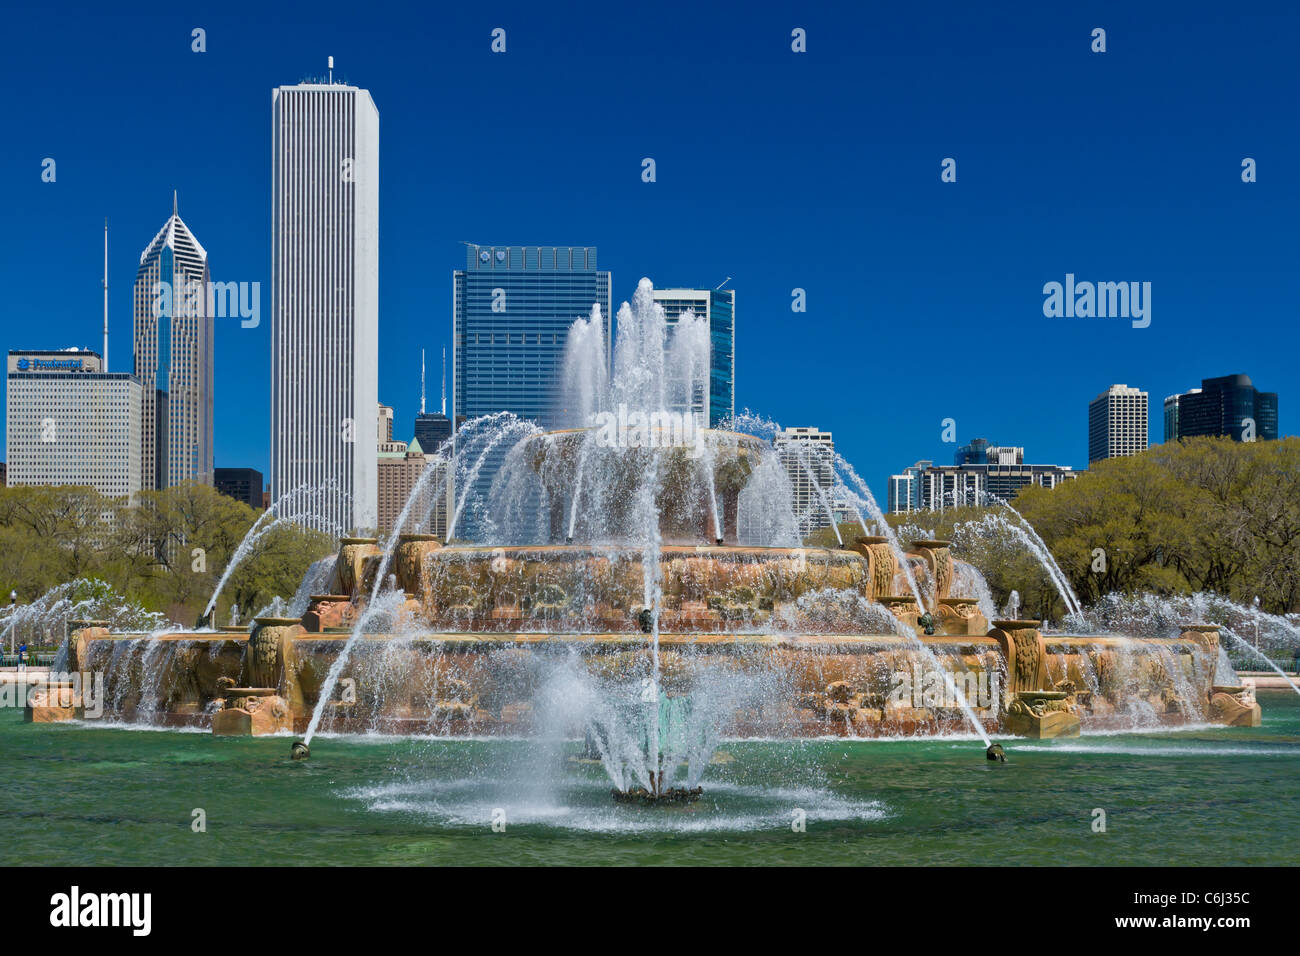 El Clarence Buckingham Fountain Memorial en Lakeshore Dr. en Chicago, Illinois, EE.UU. Imagen De Stock